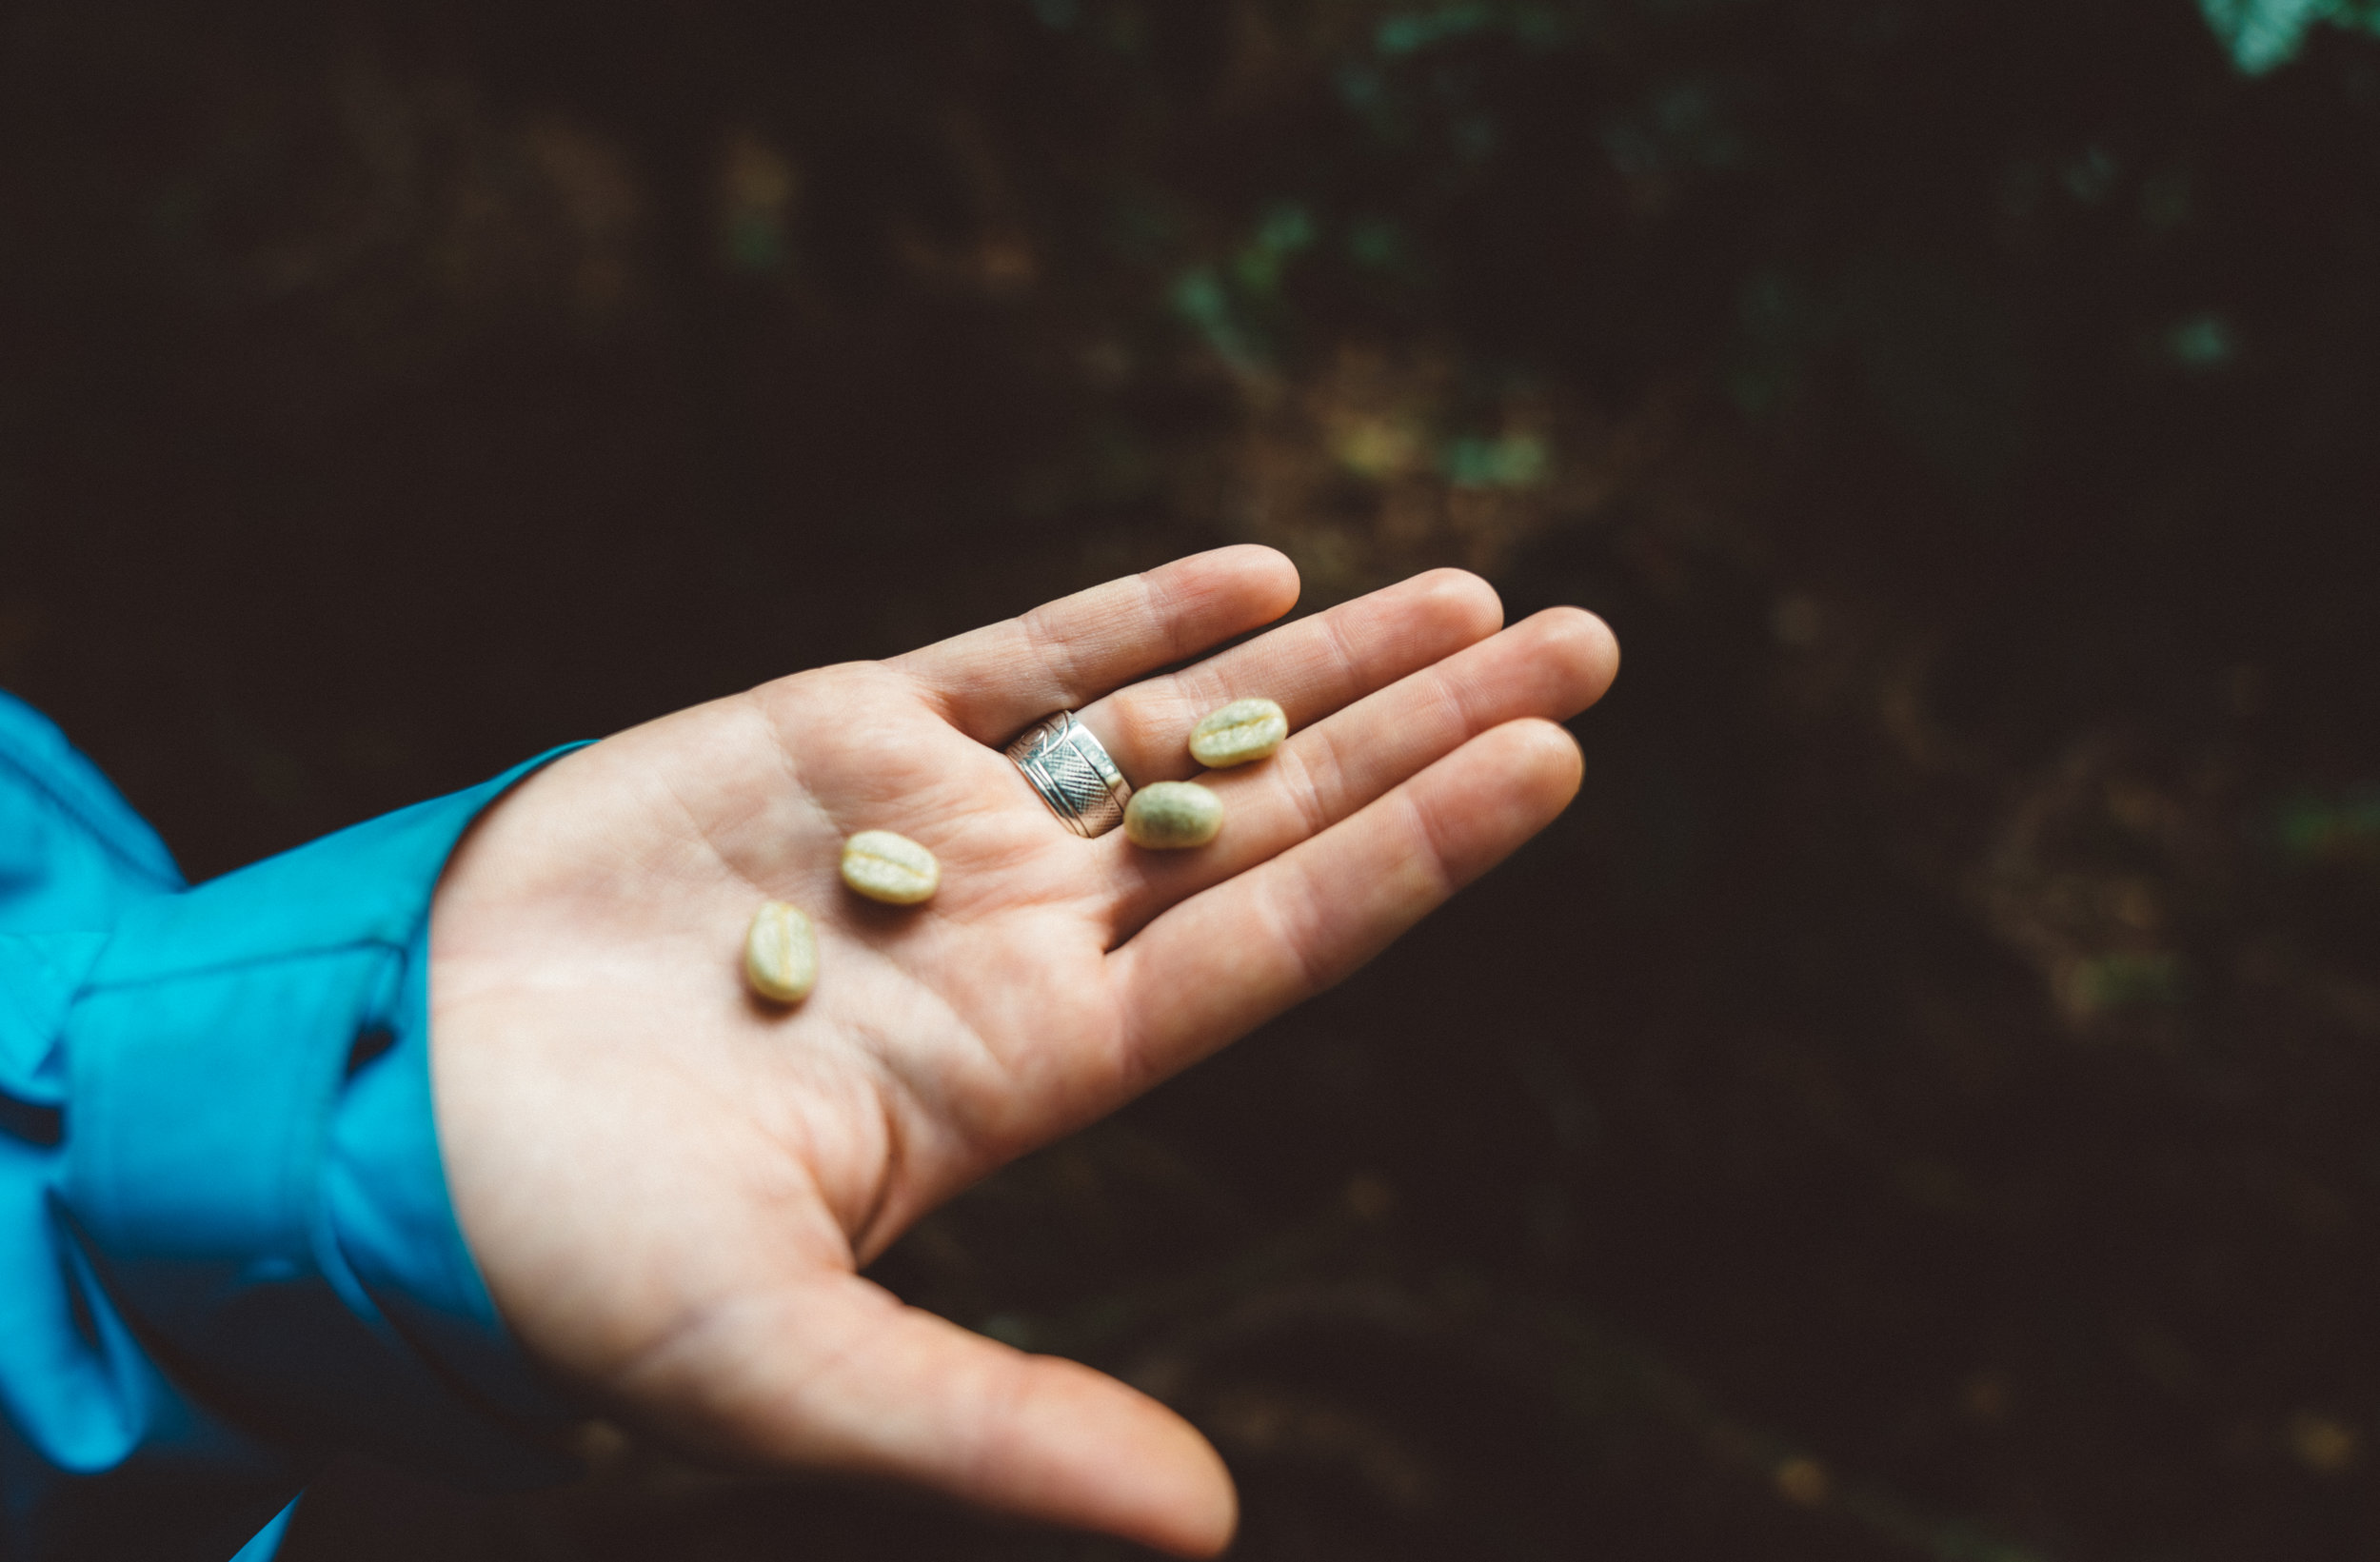 The beans in their completely un-dried form, straight out of their berry shell. They come out of the first shell covered in a translucent, slimy layer which is sweet to the taste.